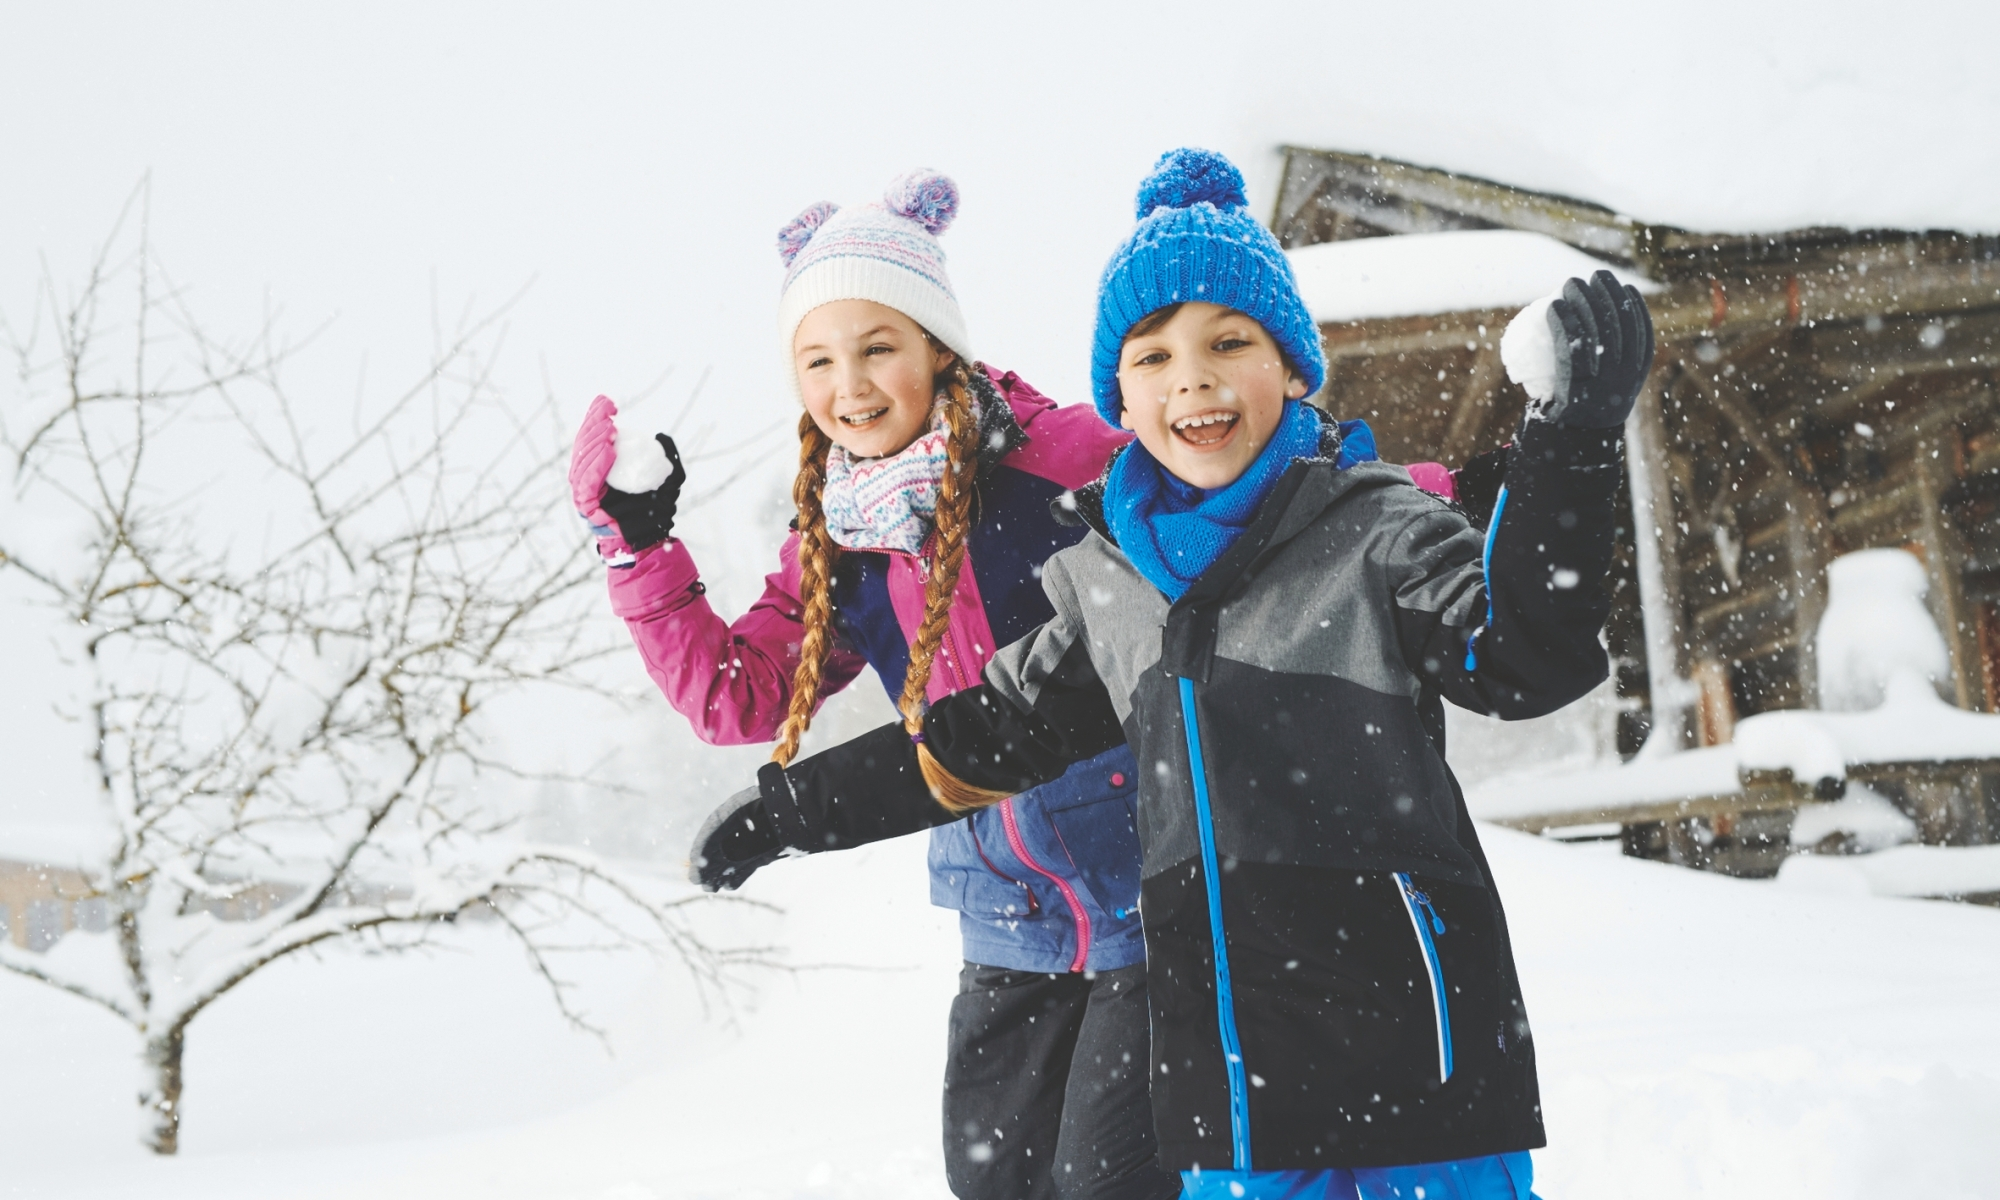 5976131ba1c Aldi snow gear, 2019: what's new, how much does it cost and does it ...